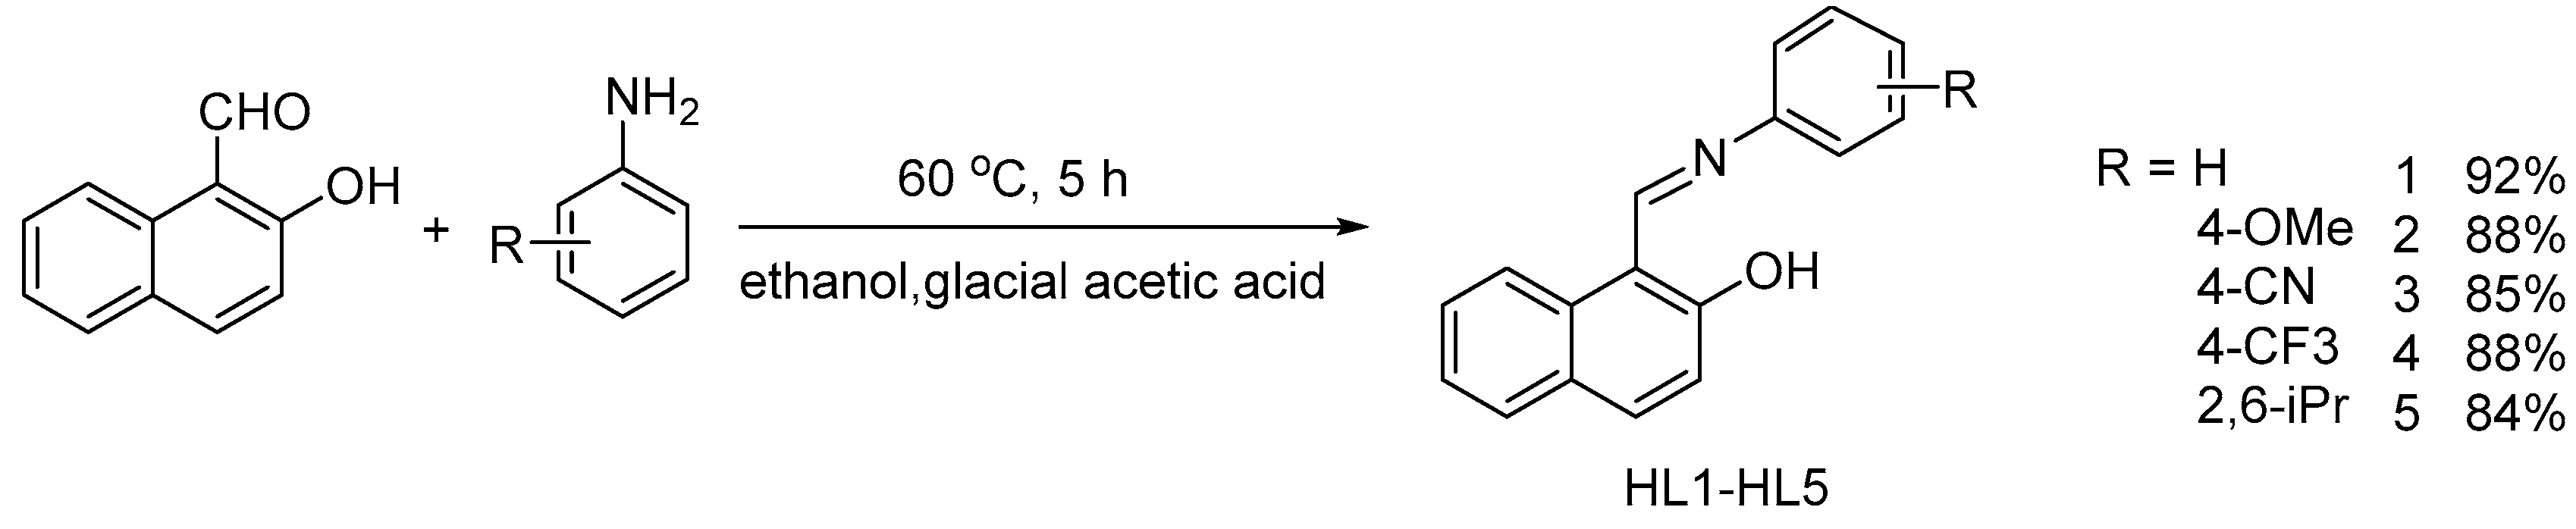 nickel complex from schiff base ligand Of a tridentate schiff base ligand in dinuclear nickel(ii) complex: and a penta-nuclear nickel(ii) complex with oximato schiff base ligands.